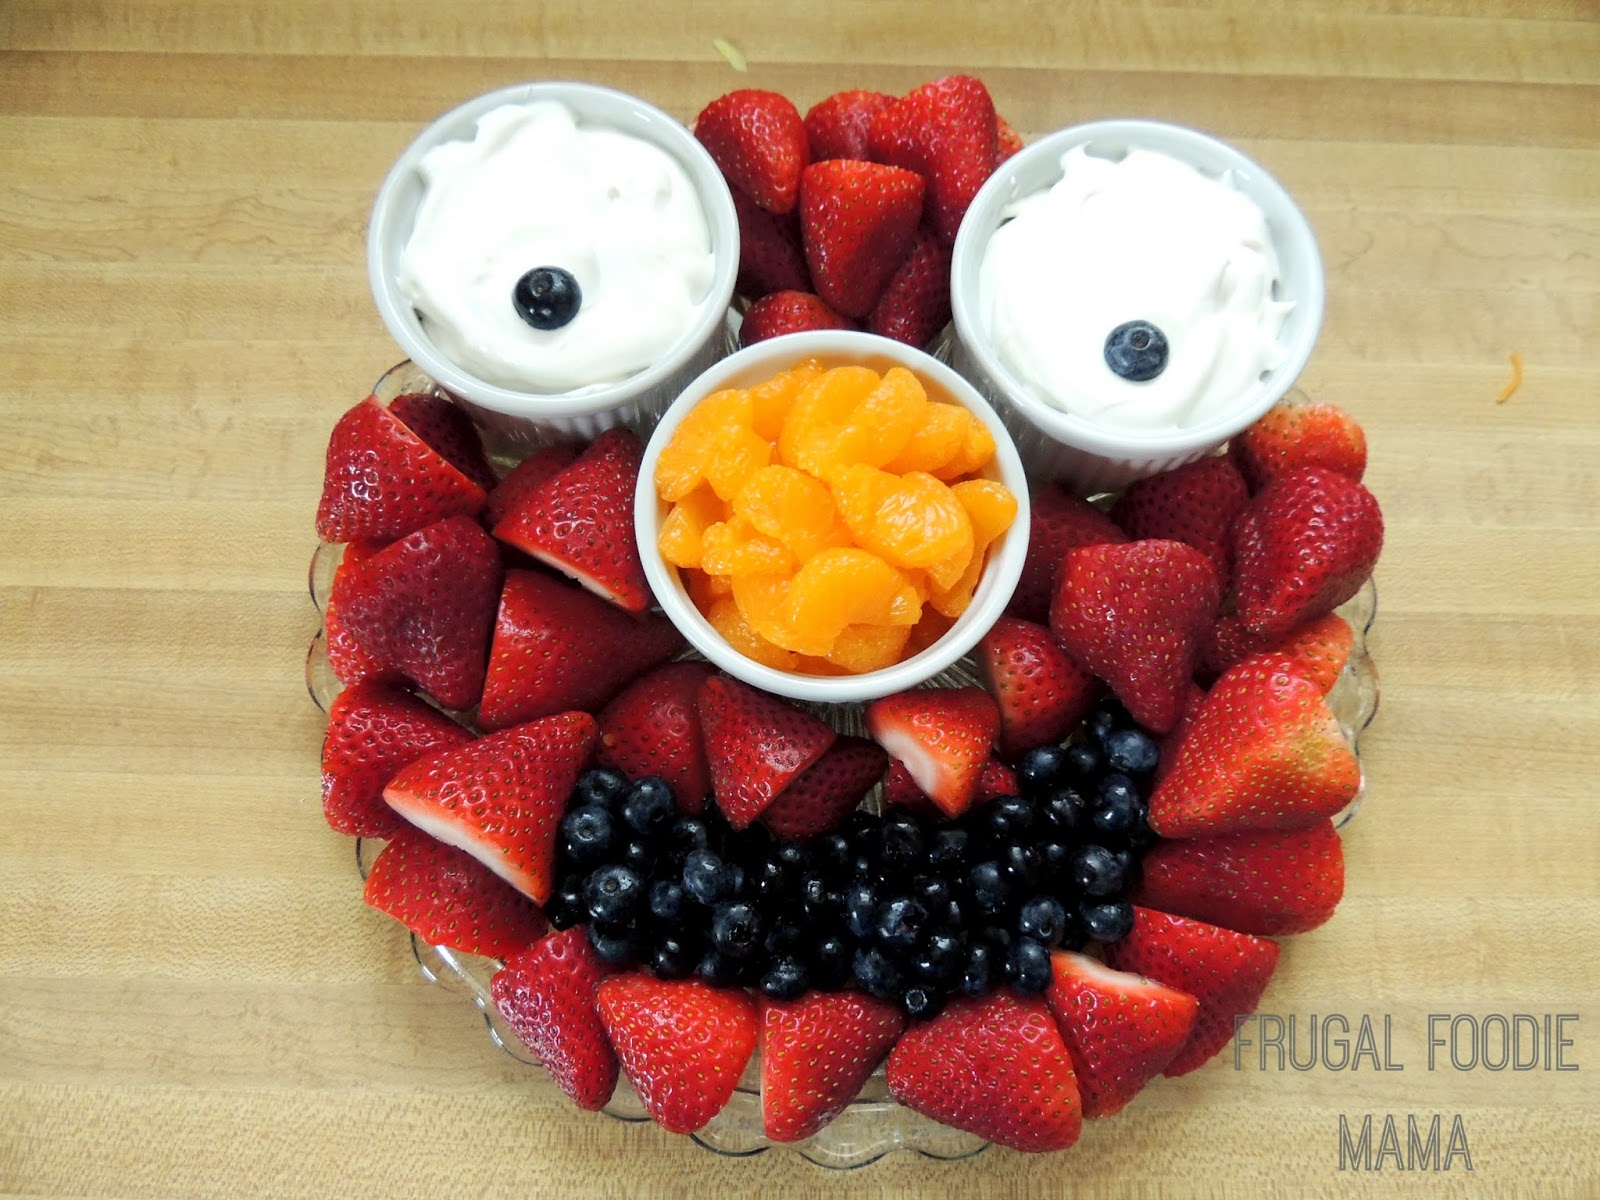 Frugal foodie mama an elmo birthday celebration for Apples decoration